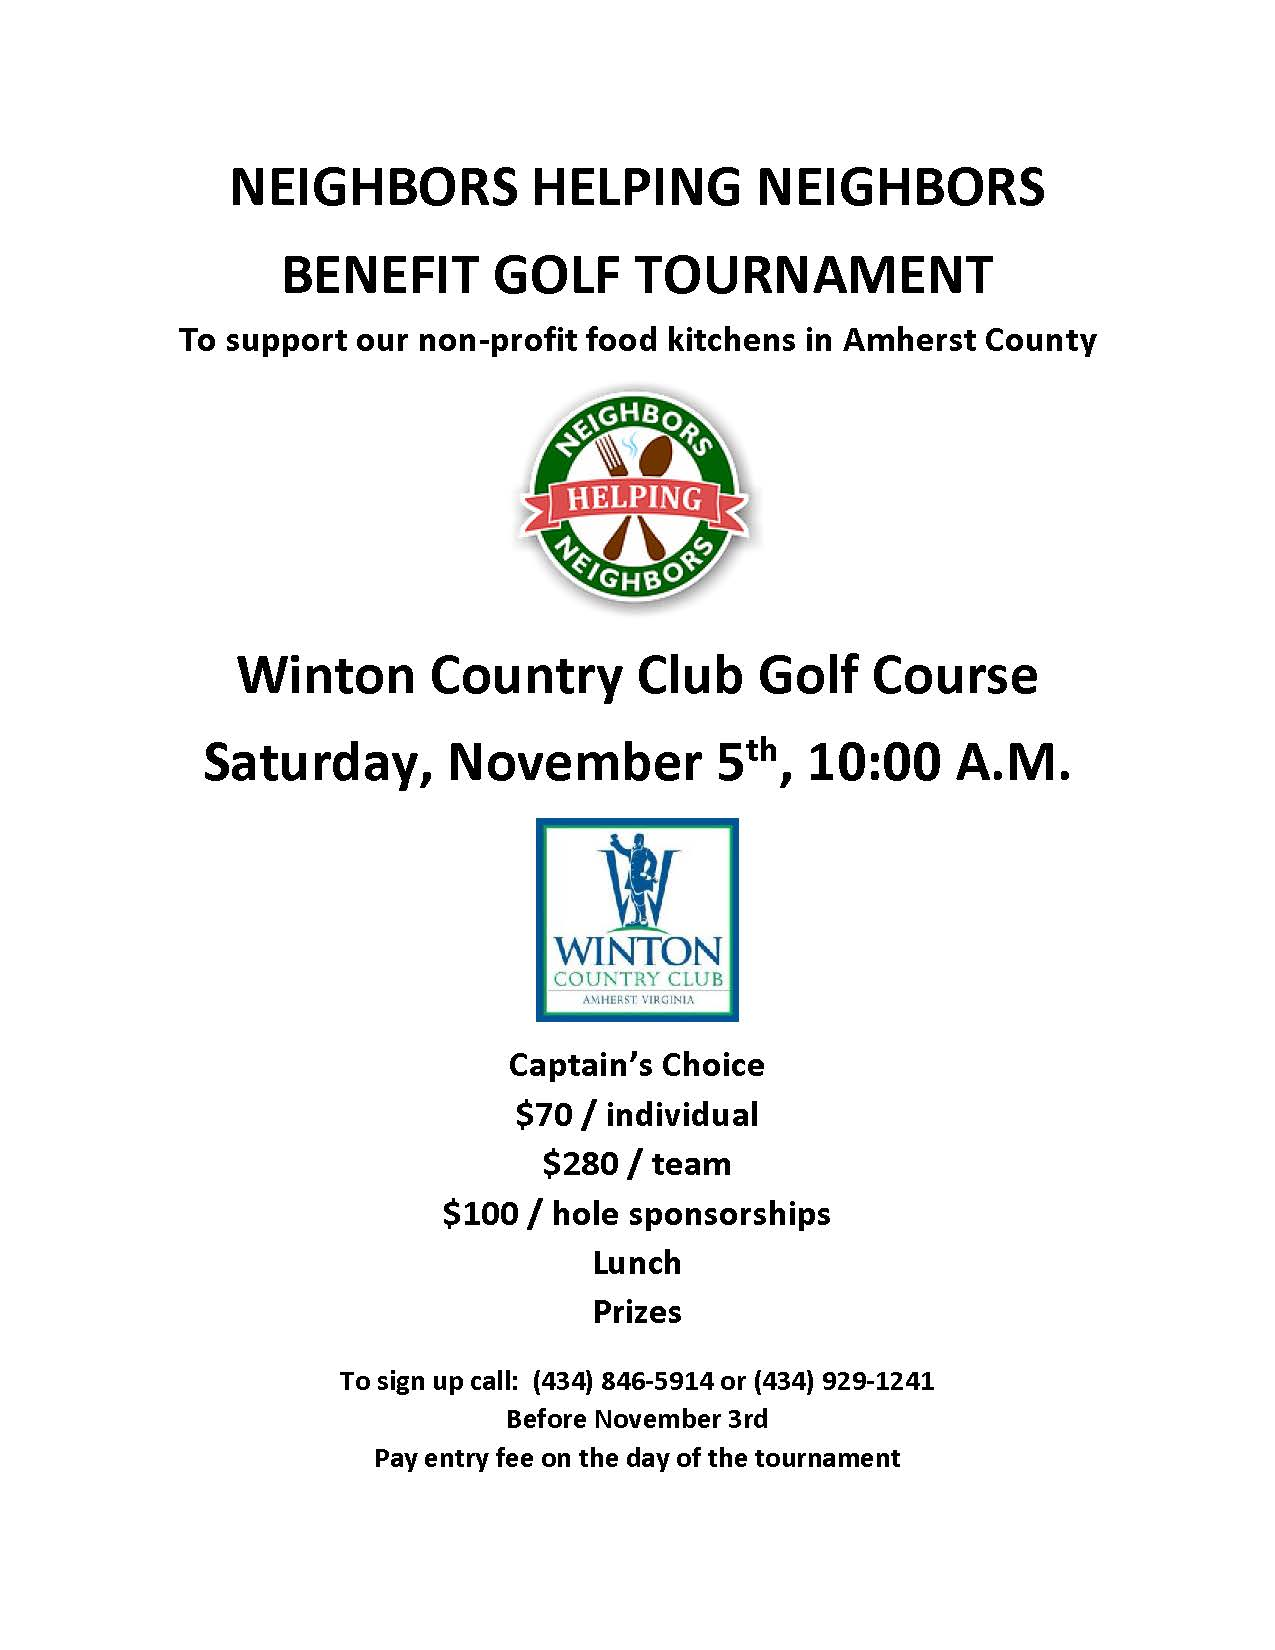 news events neighbors helping neighbors of amherst county hosts first annual golf benefit on nov 5th at winton country club